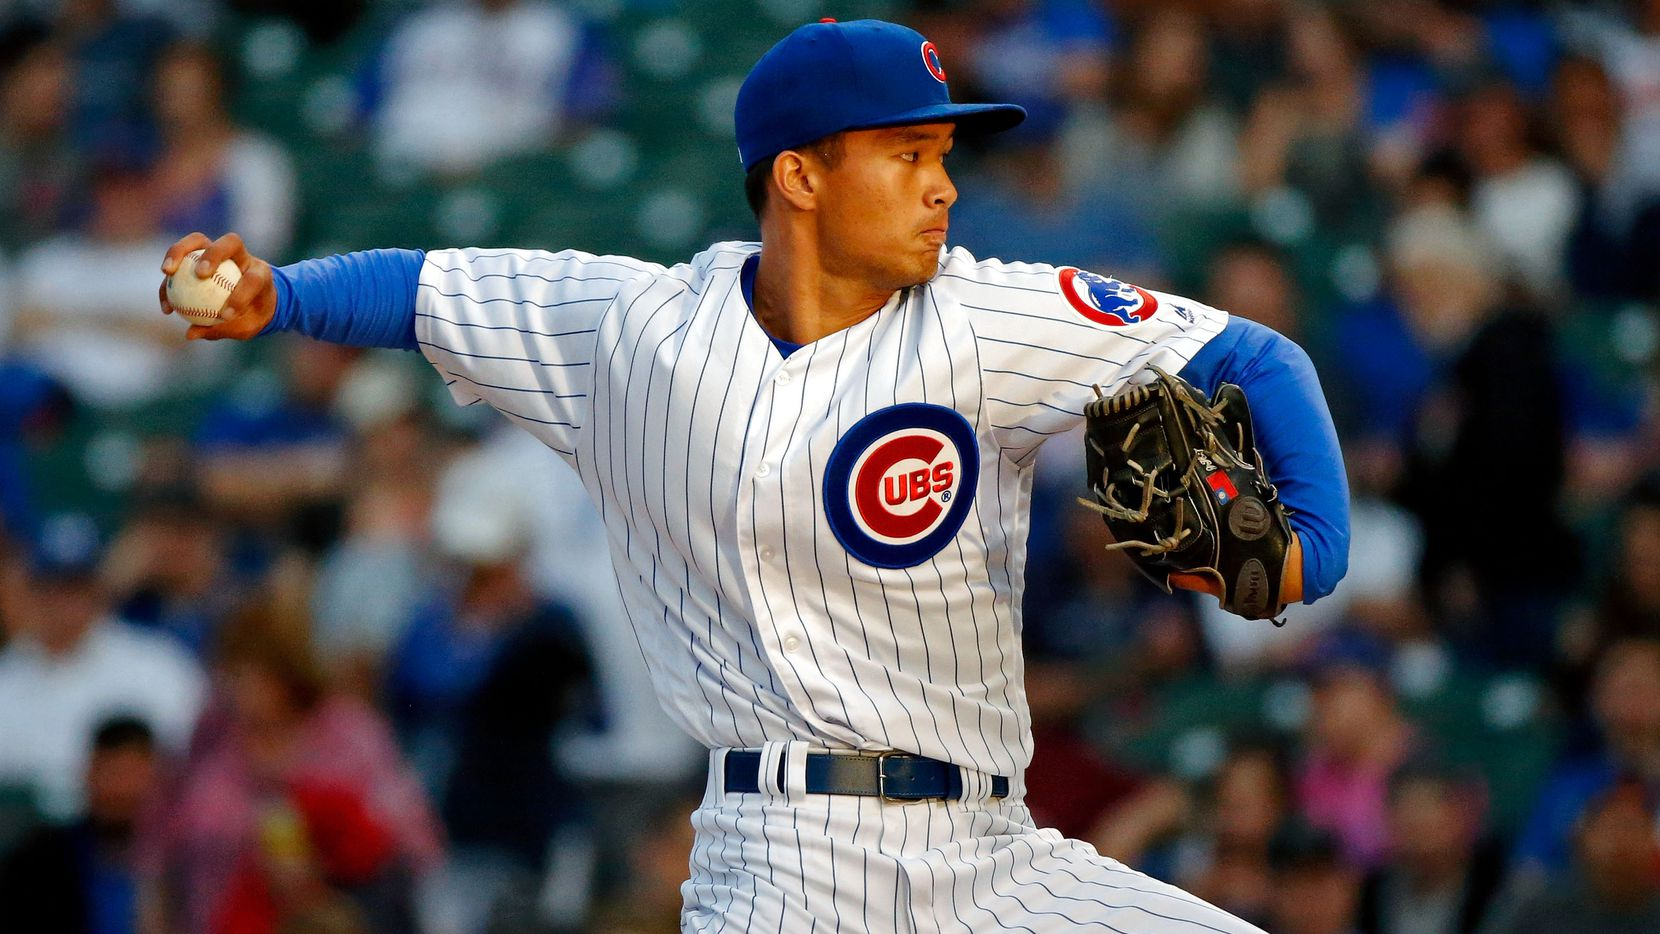 CHICAGO, IL - MAY 08:  Jen-Ho Tseng #52 of the Chicago Cubs pitches against the Miami Marlins during the first inning at Wrigley Field on May 8, 2018 in Chicago, Illinois.  (Photo by Jon Durr/Getty Images)